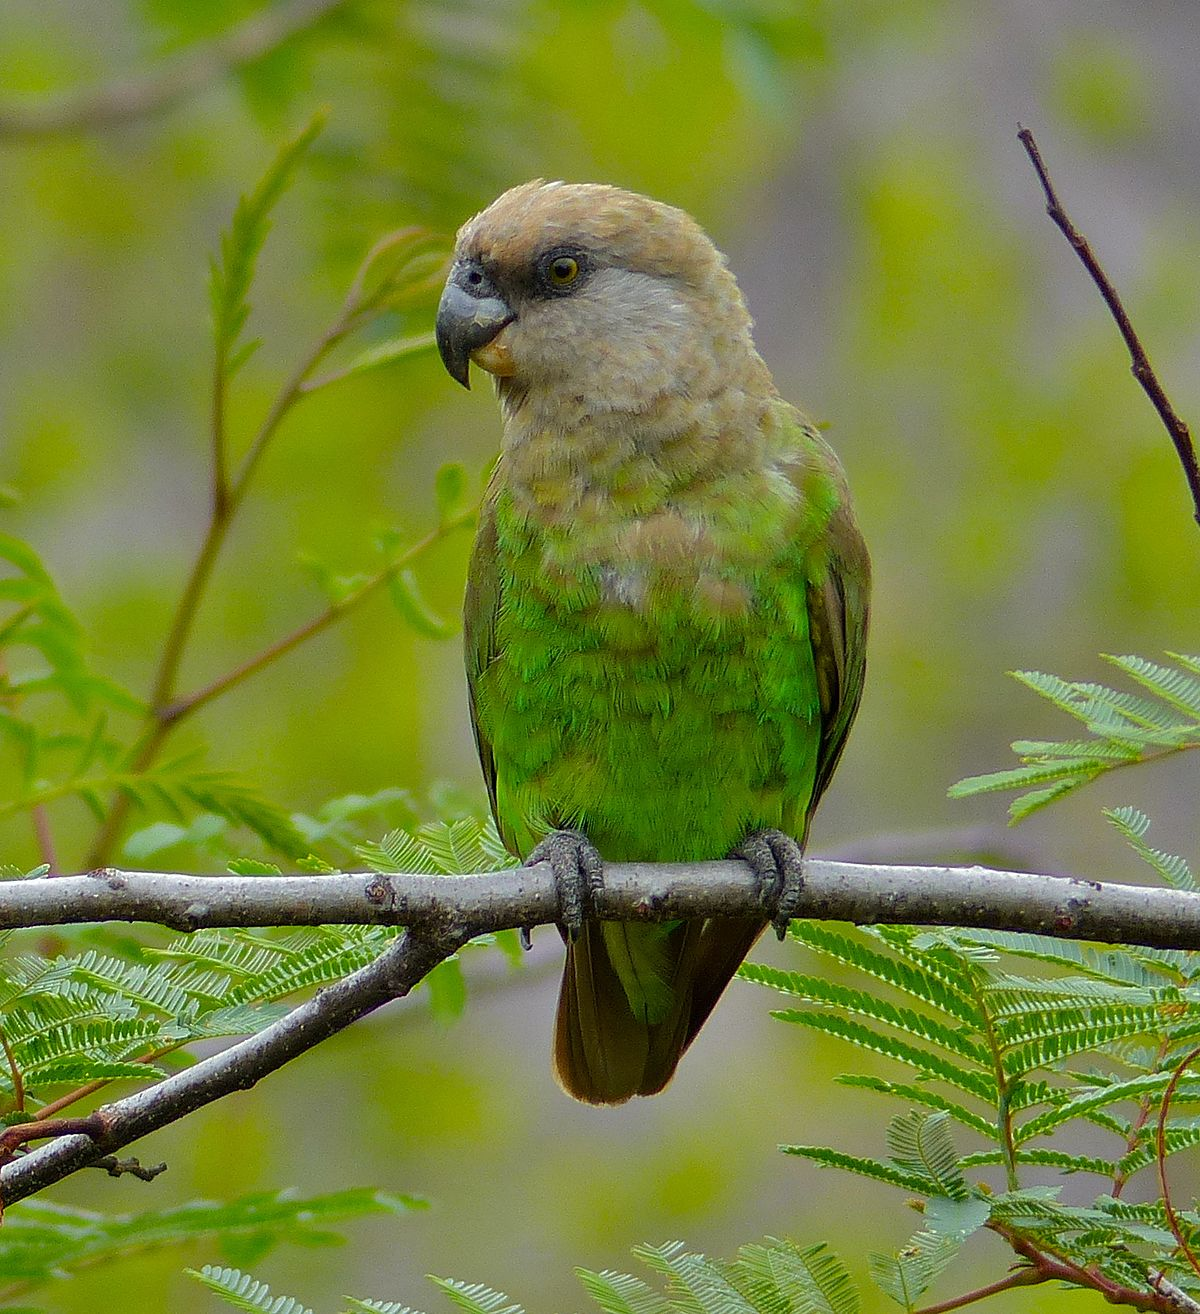 Brown-headed parrot - Wikipedia